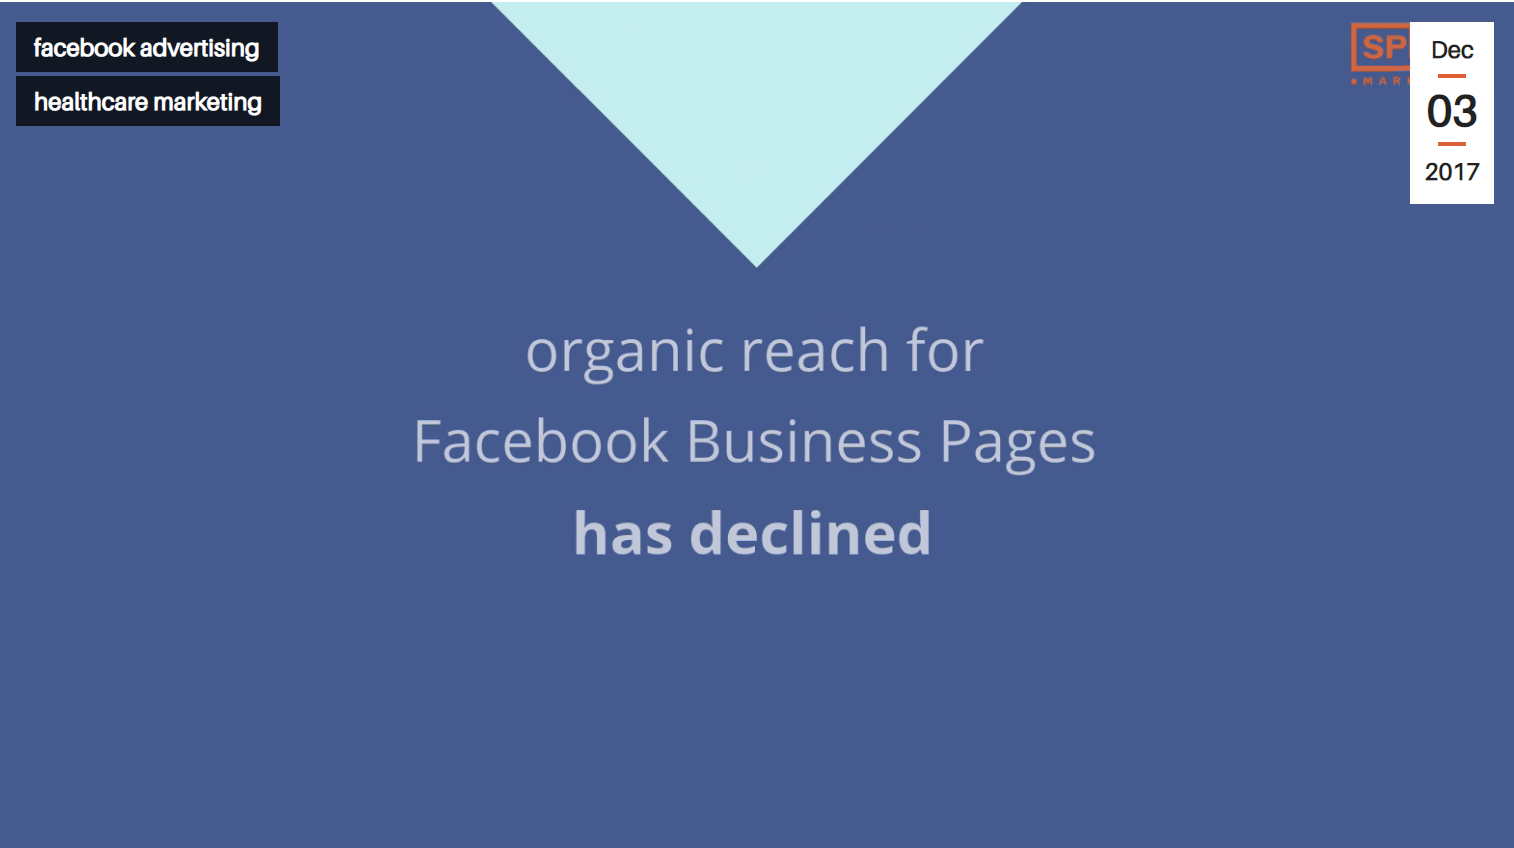 Facebook business pages has declined